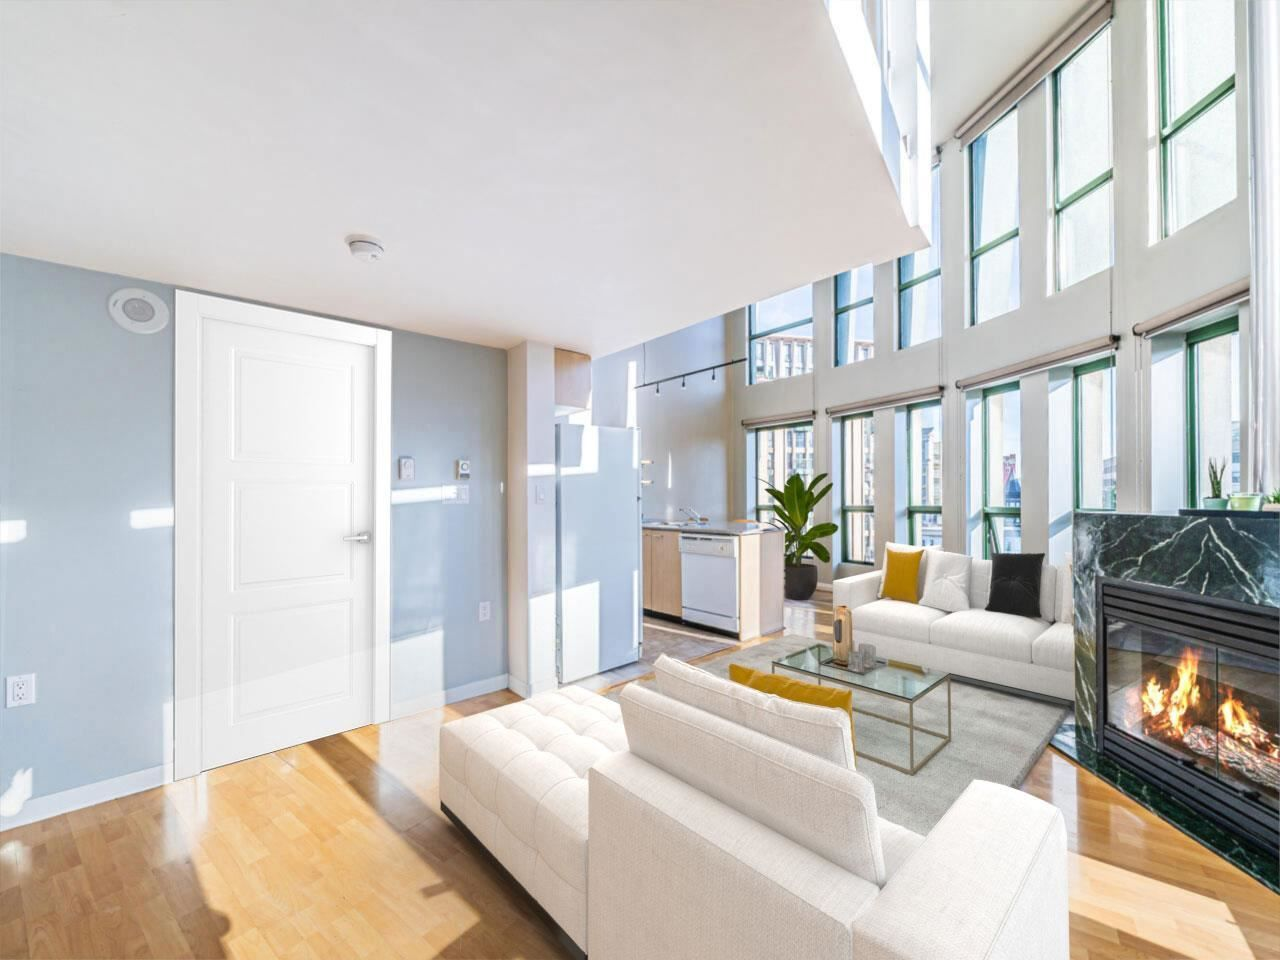 """Main Photo: 503 1 E CORDOVA Street in Vancouver: Downtown VE Condo for sale in """"CARRALL STATION"""" (Vancouver East)  : MLS®# R2583690"""